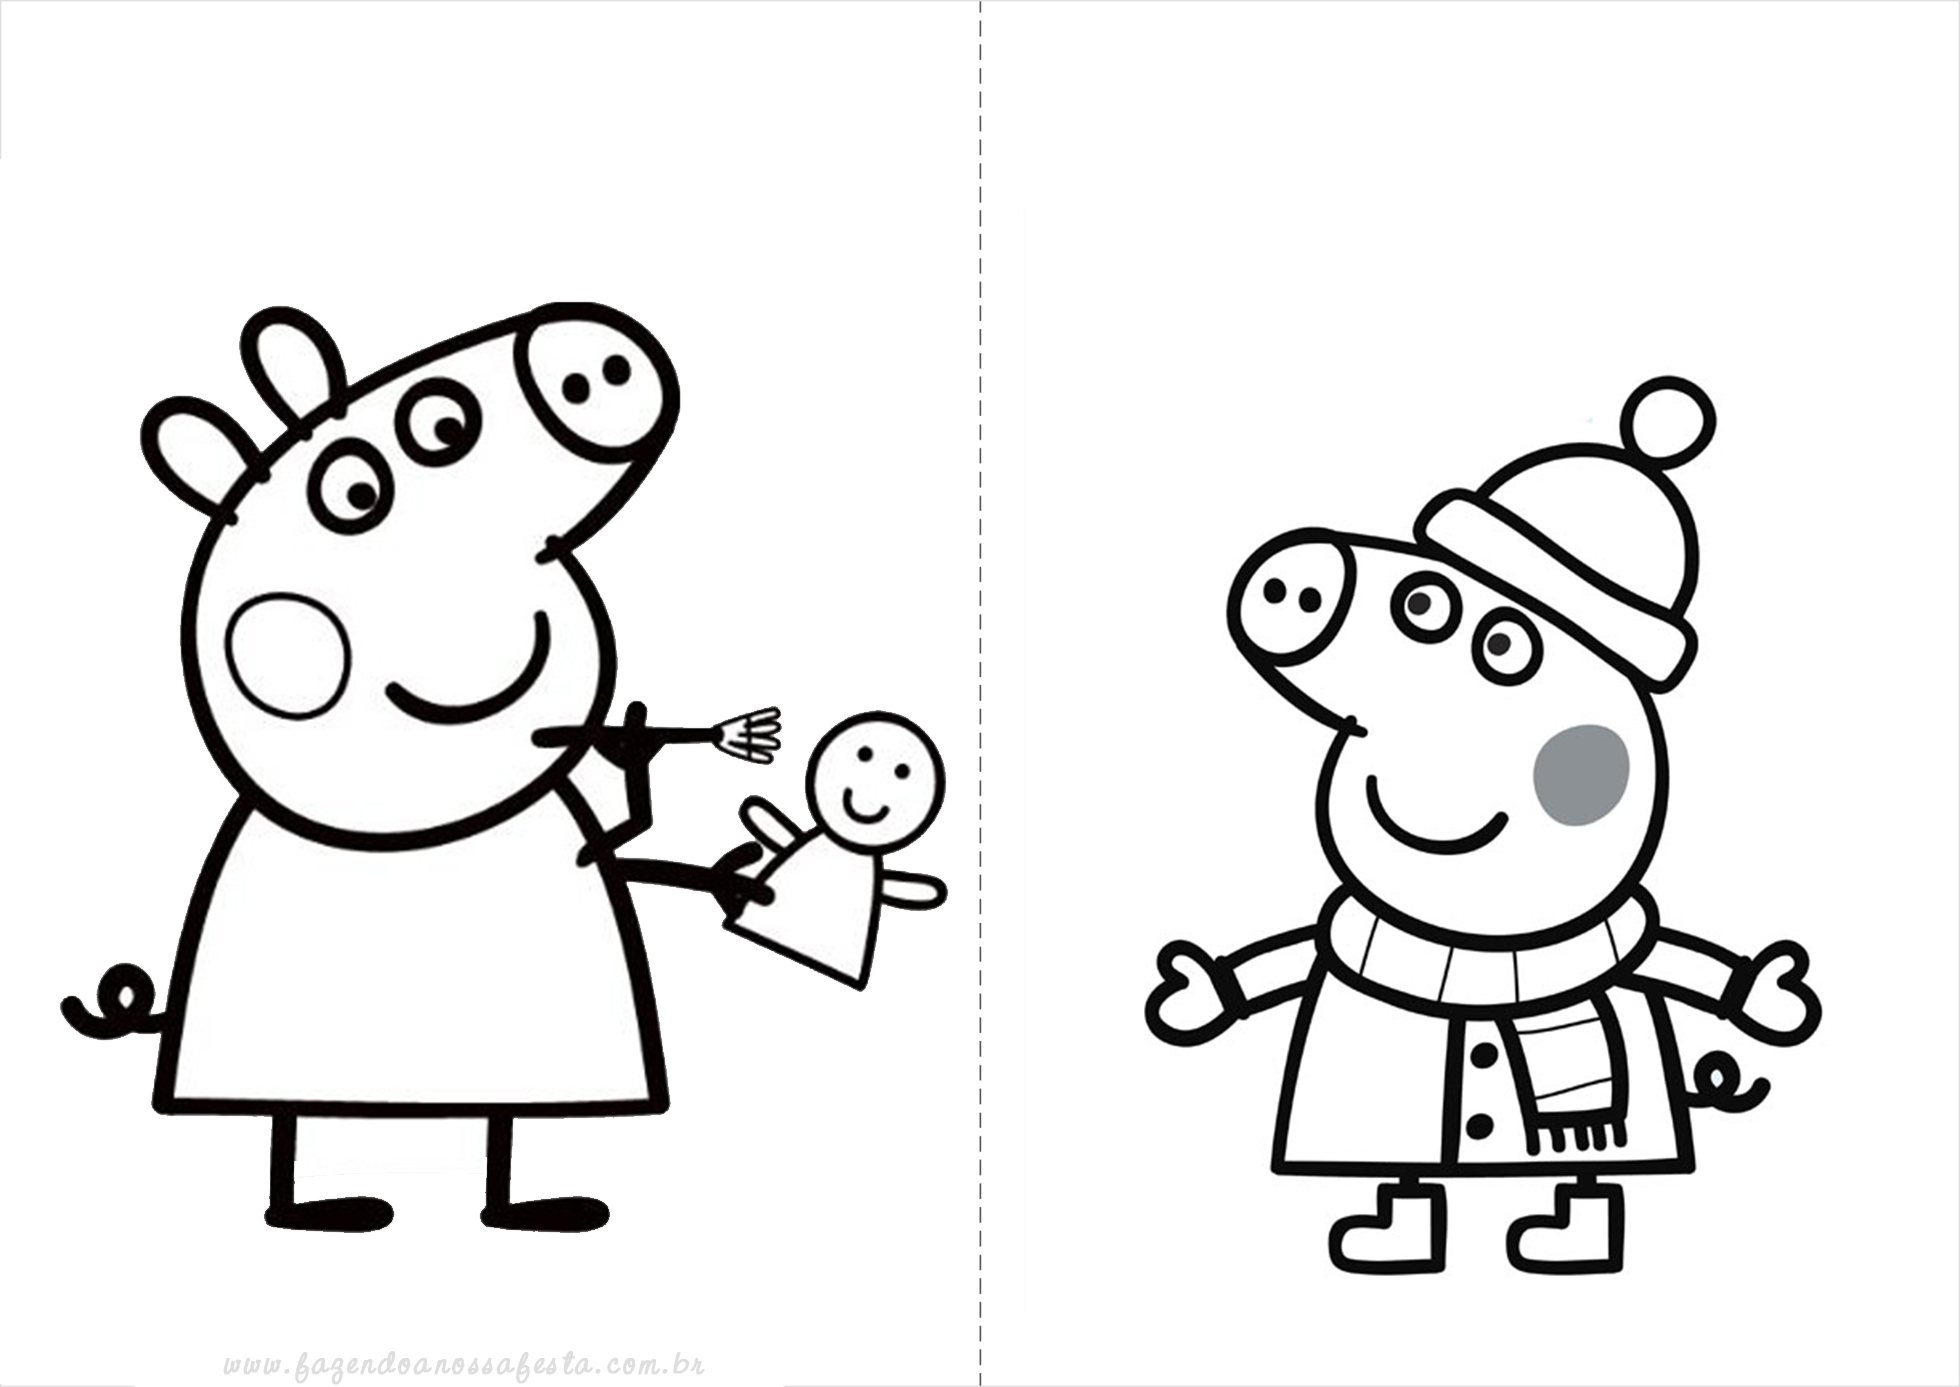 Princess Pepper Pig Coloring Pages Princess Peppa Pig Pictures Free Coloring Pages